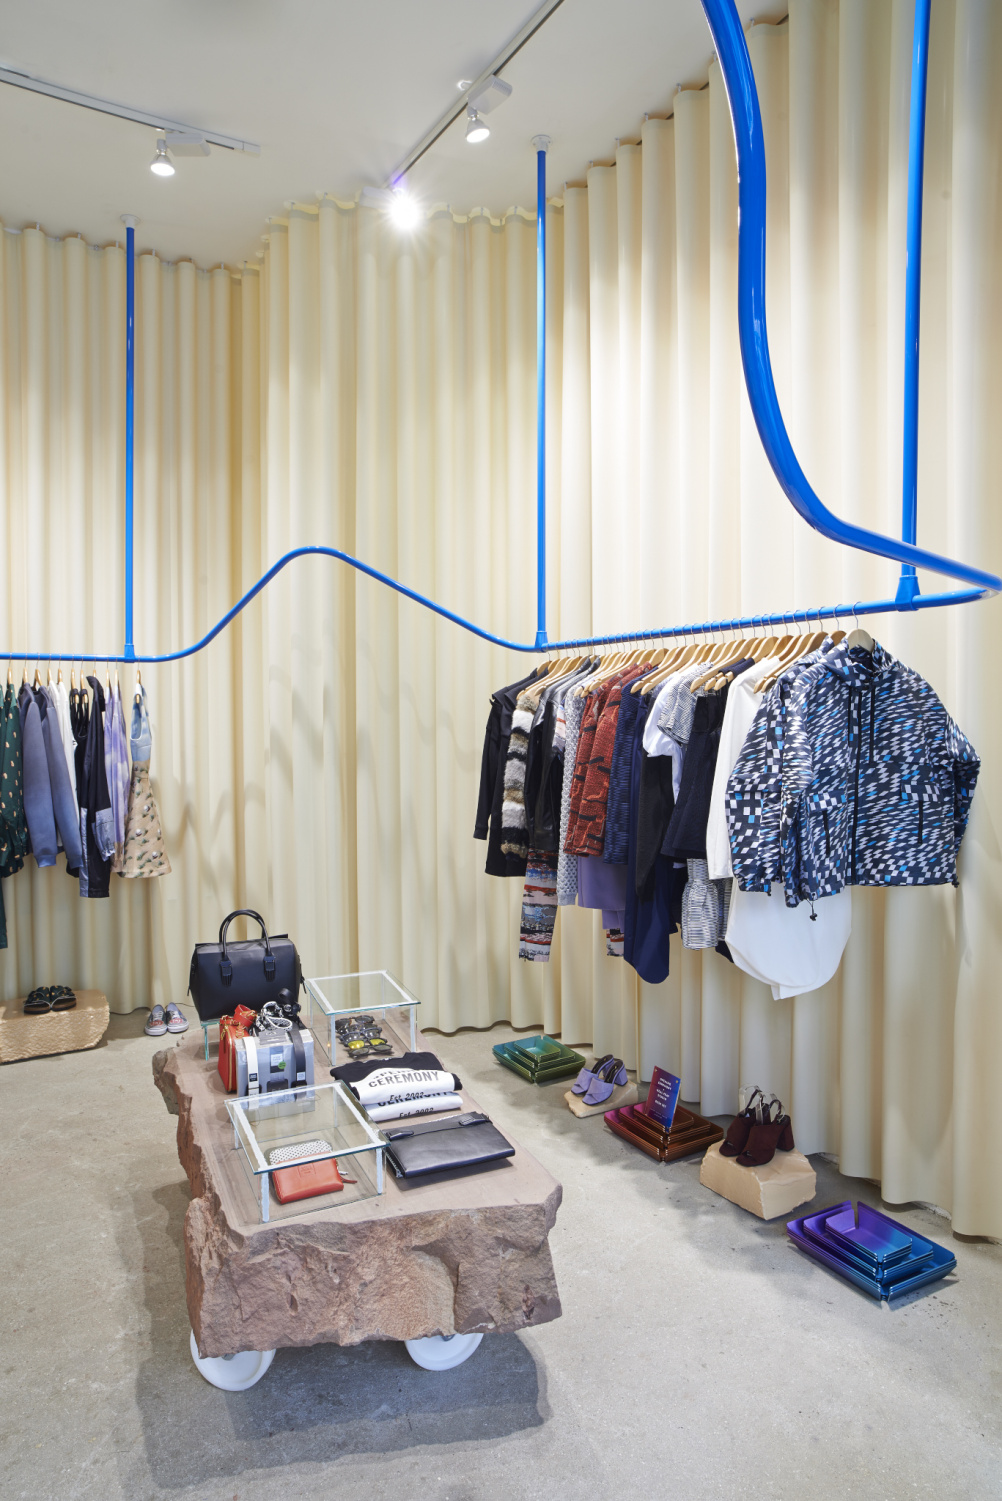 Opening Ceremony pop-up, designed by Max Lamb